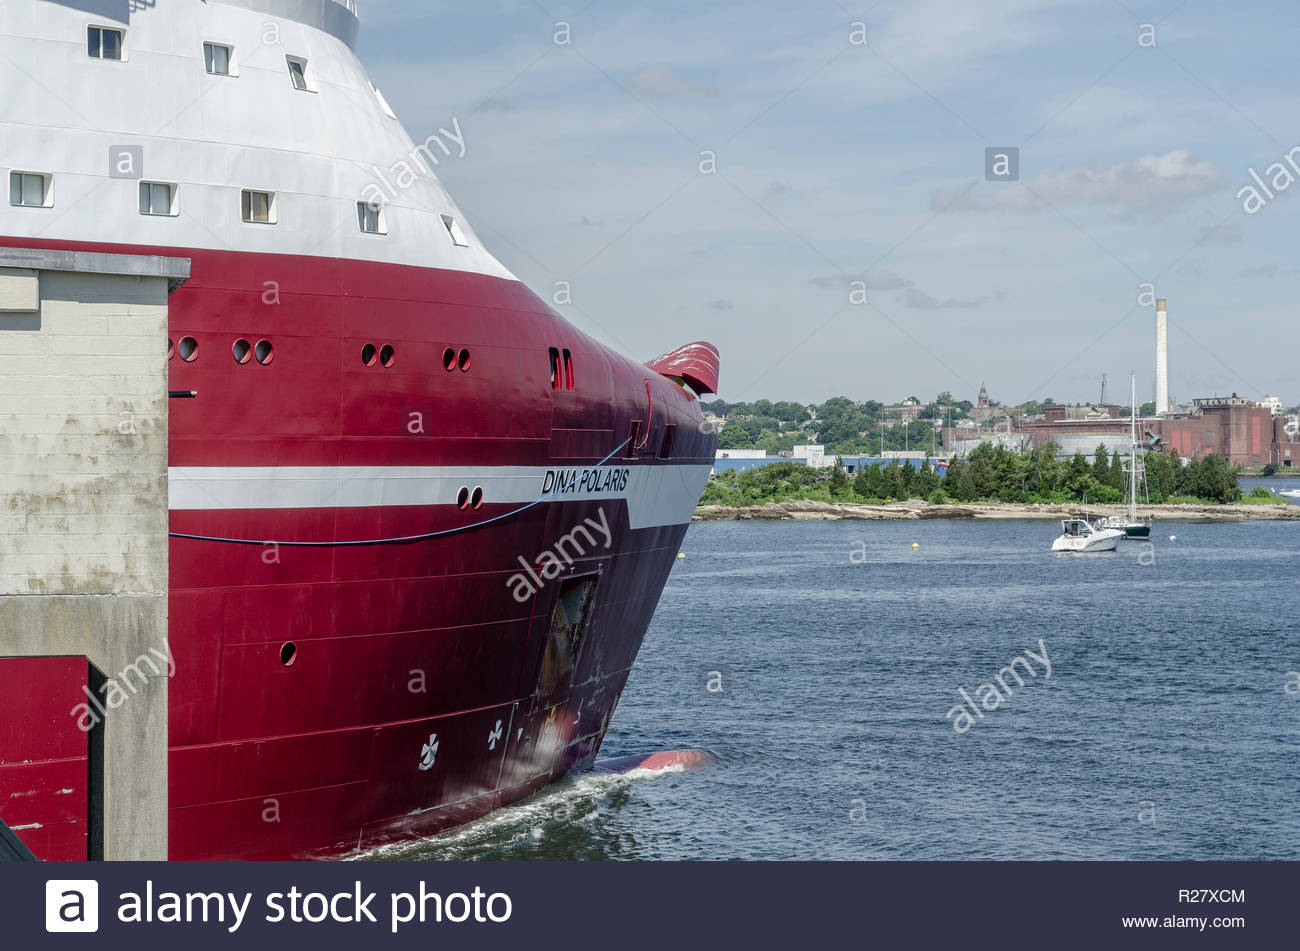 New Bedford, Massachusetts, USA - June 22, 2018: Bow of geotechnical drilling vessel Dina Polaris as it transits New Bedford hurricane barrier - Stock Image